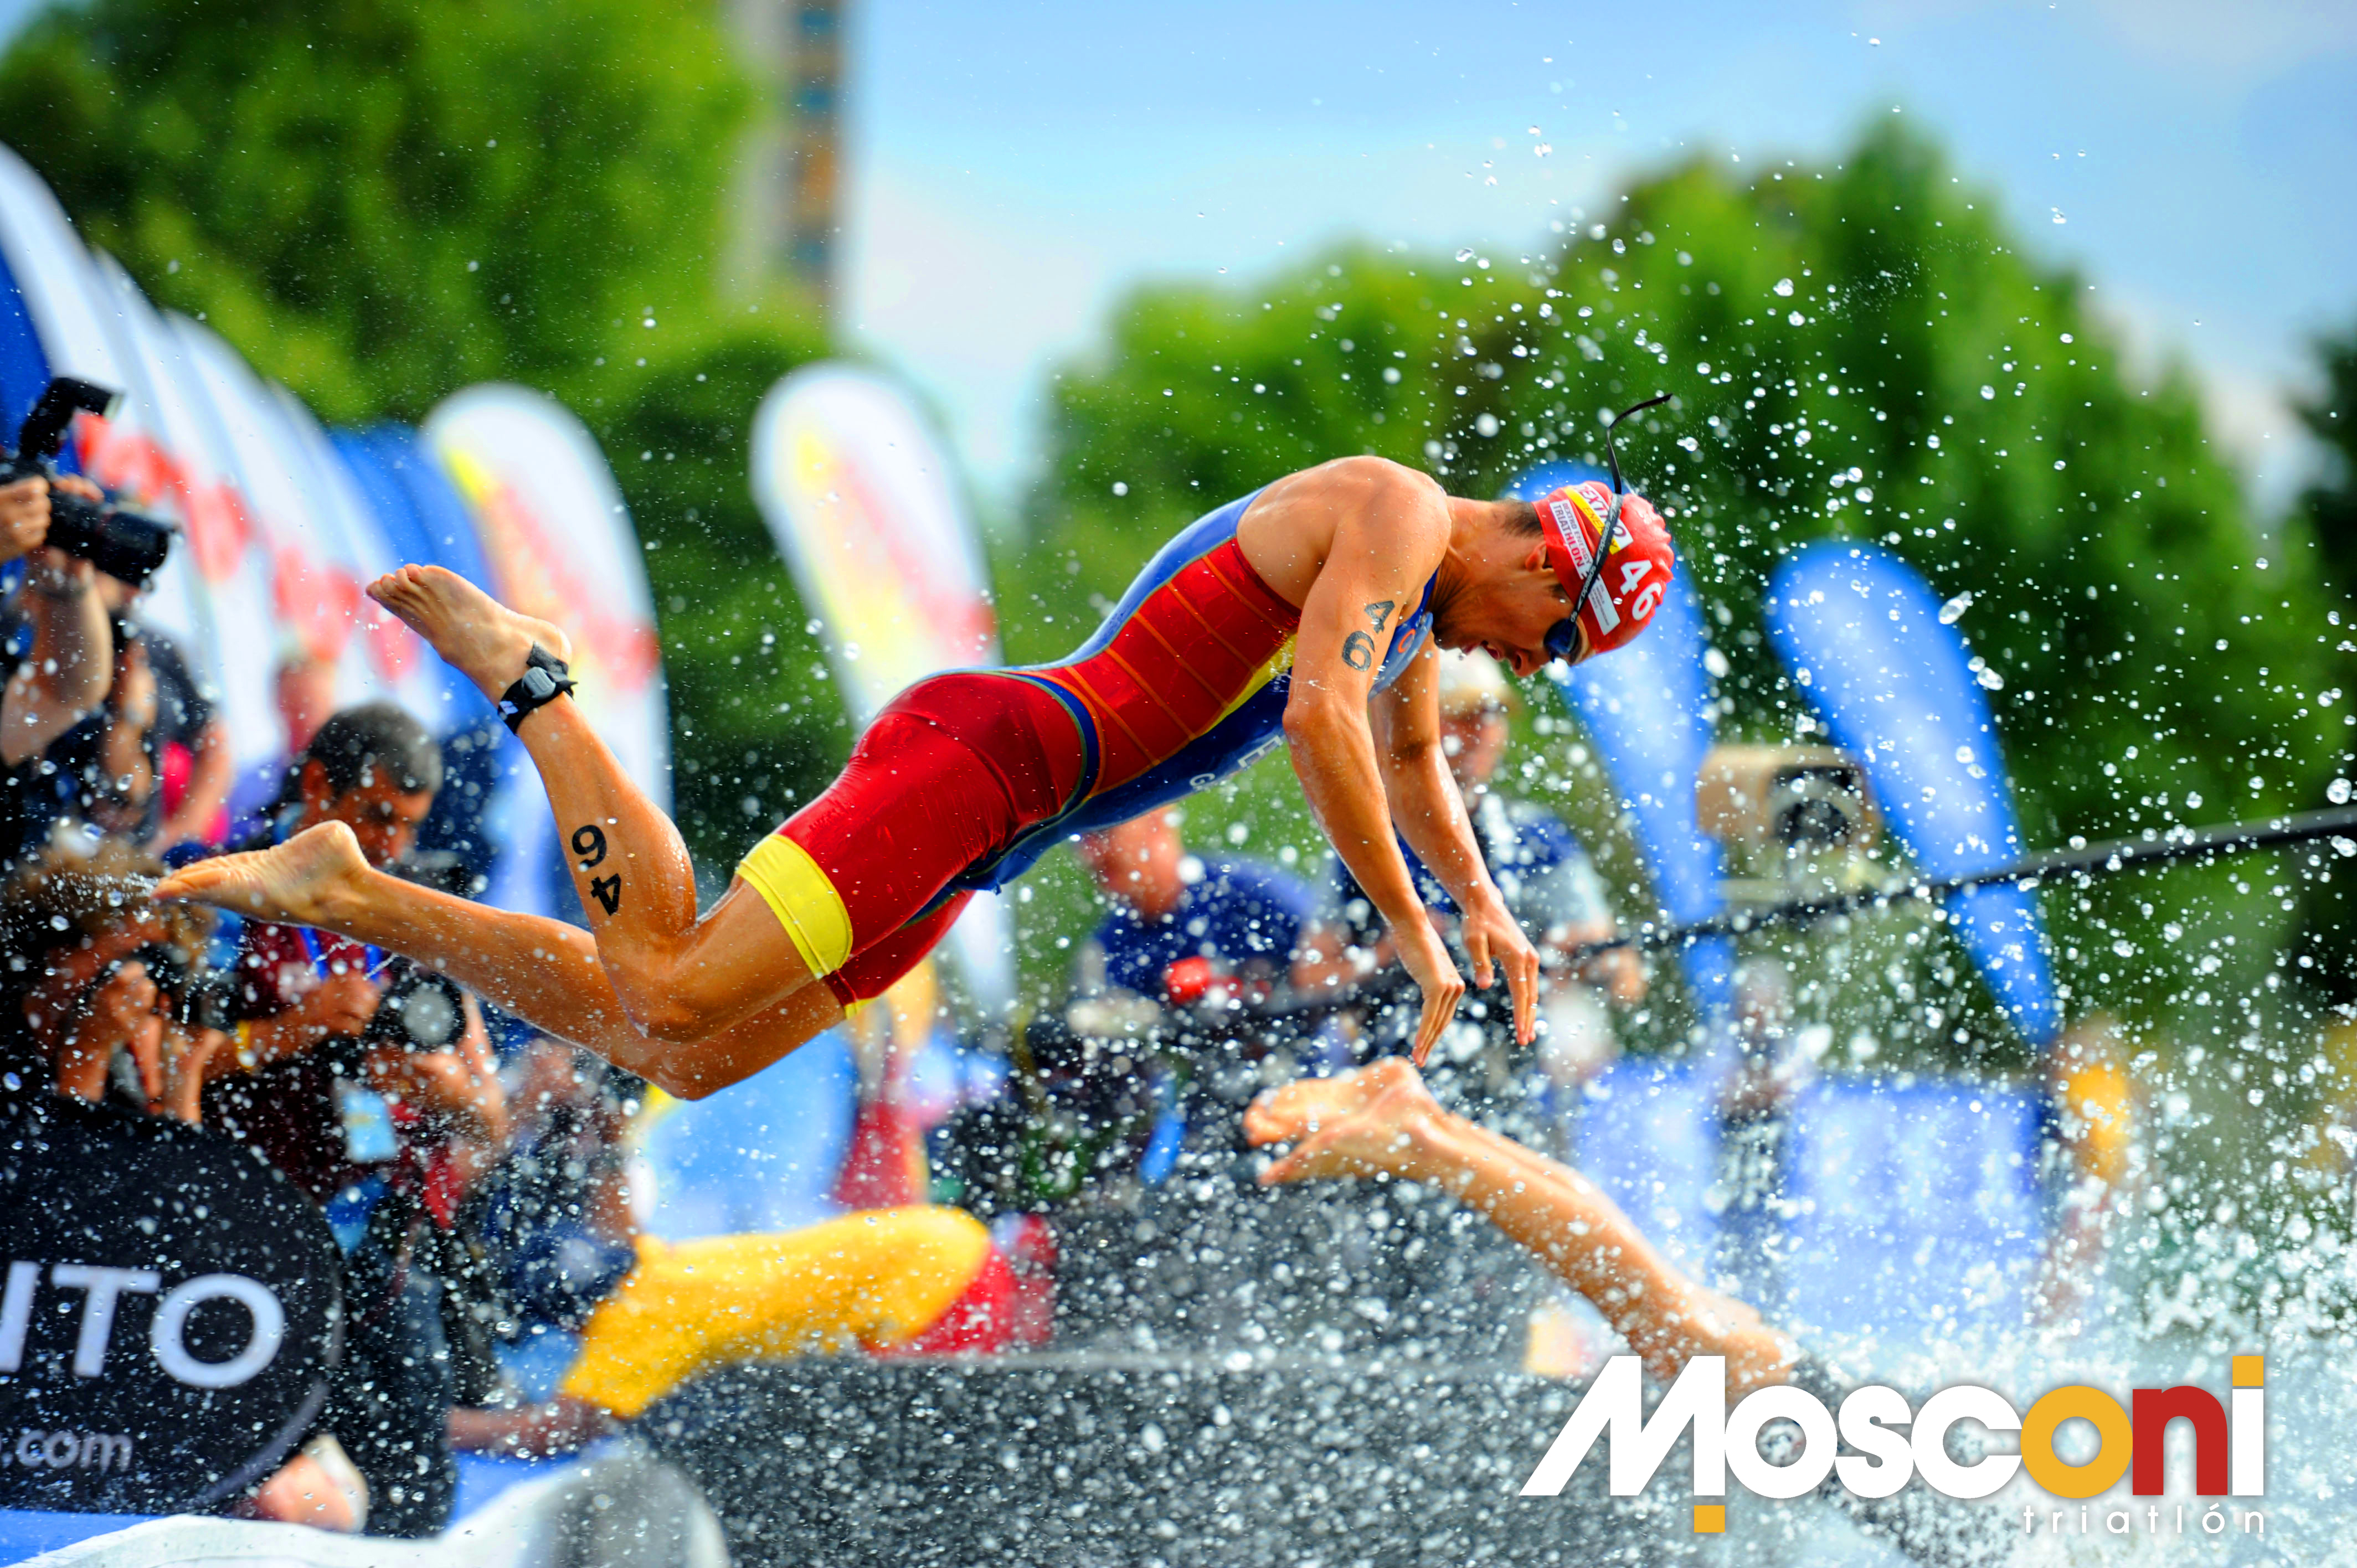 MOSCONI_COMPETITION_006